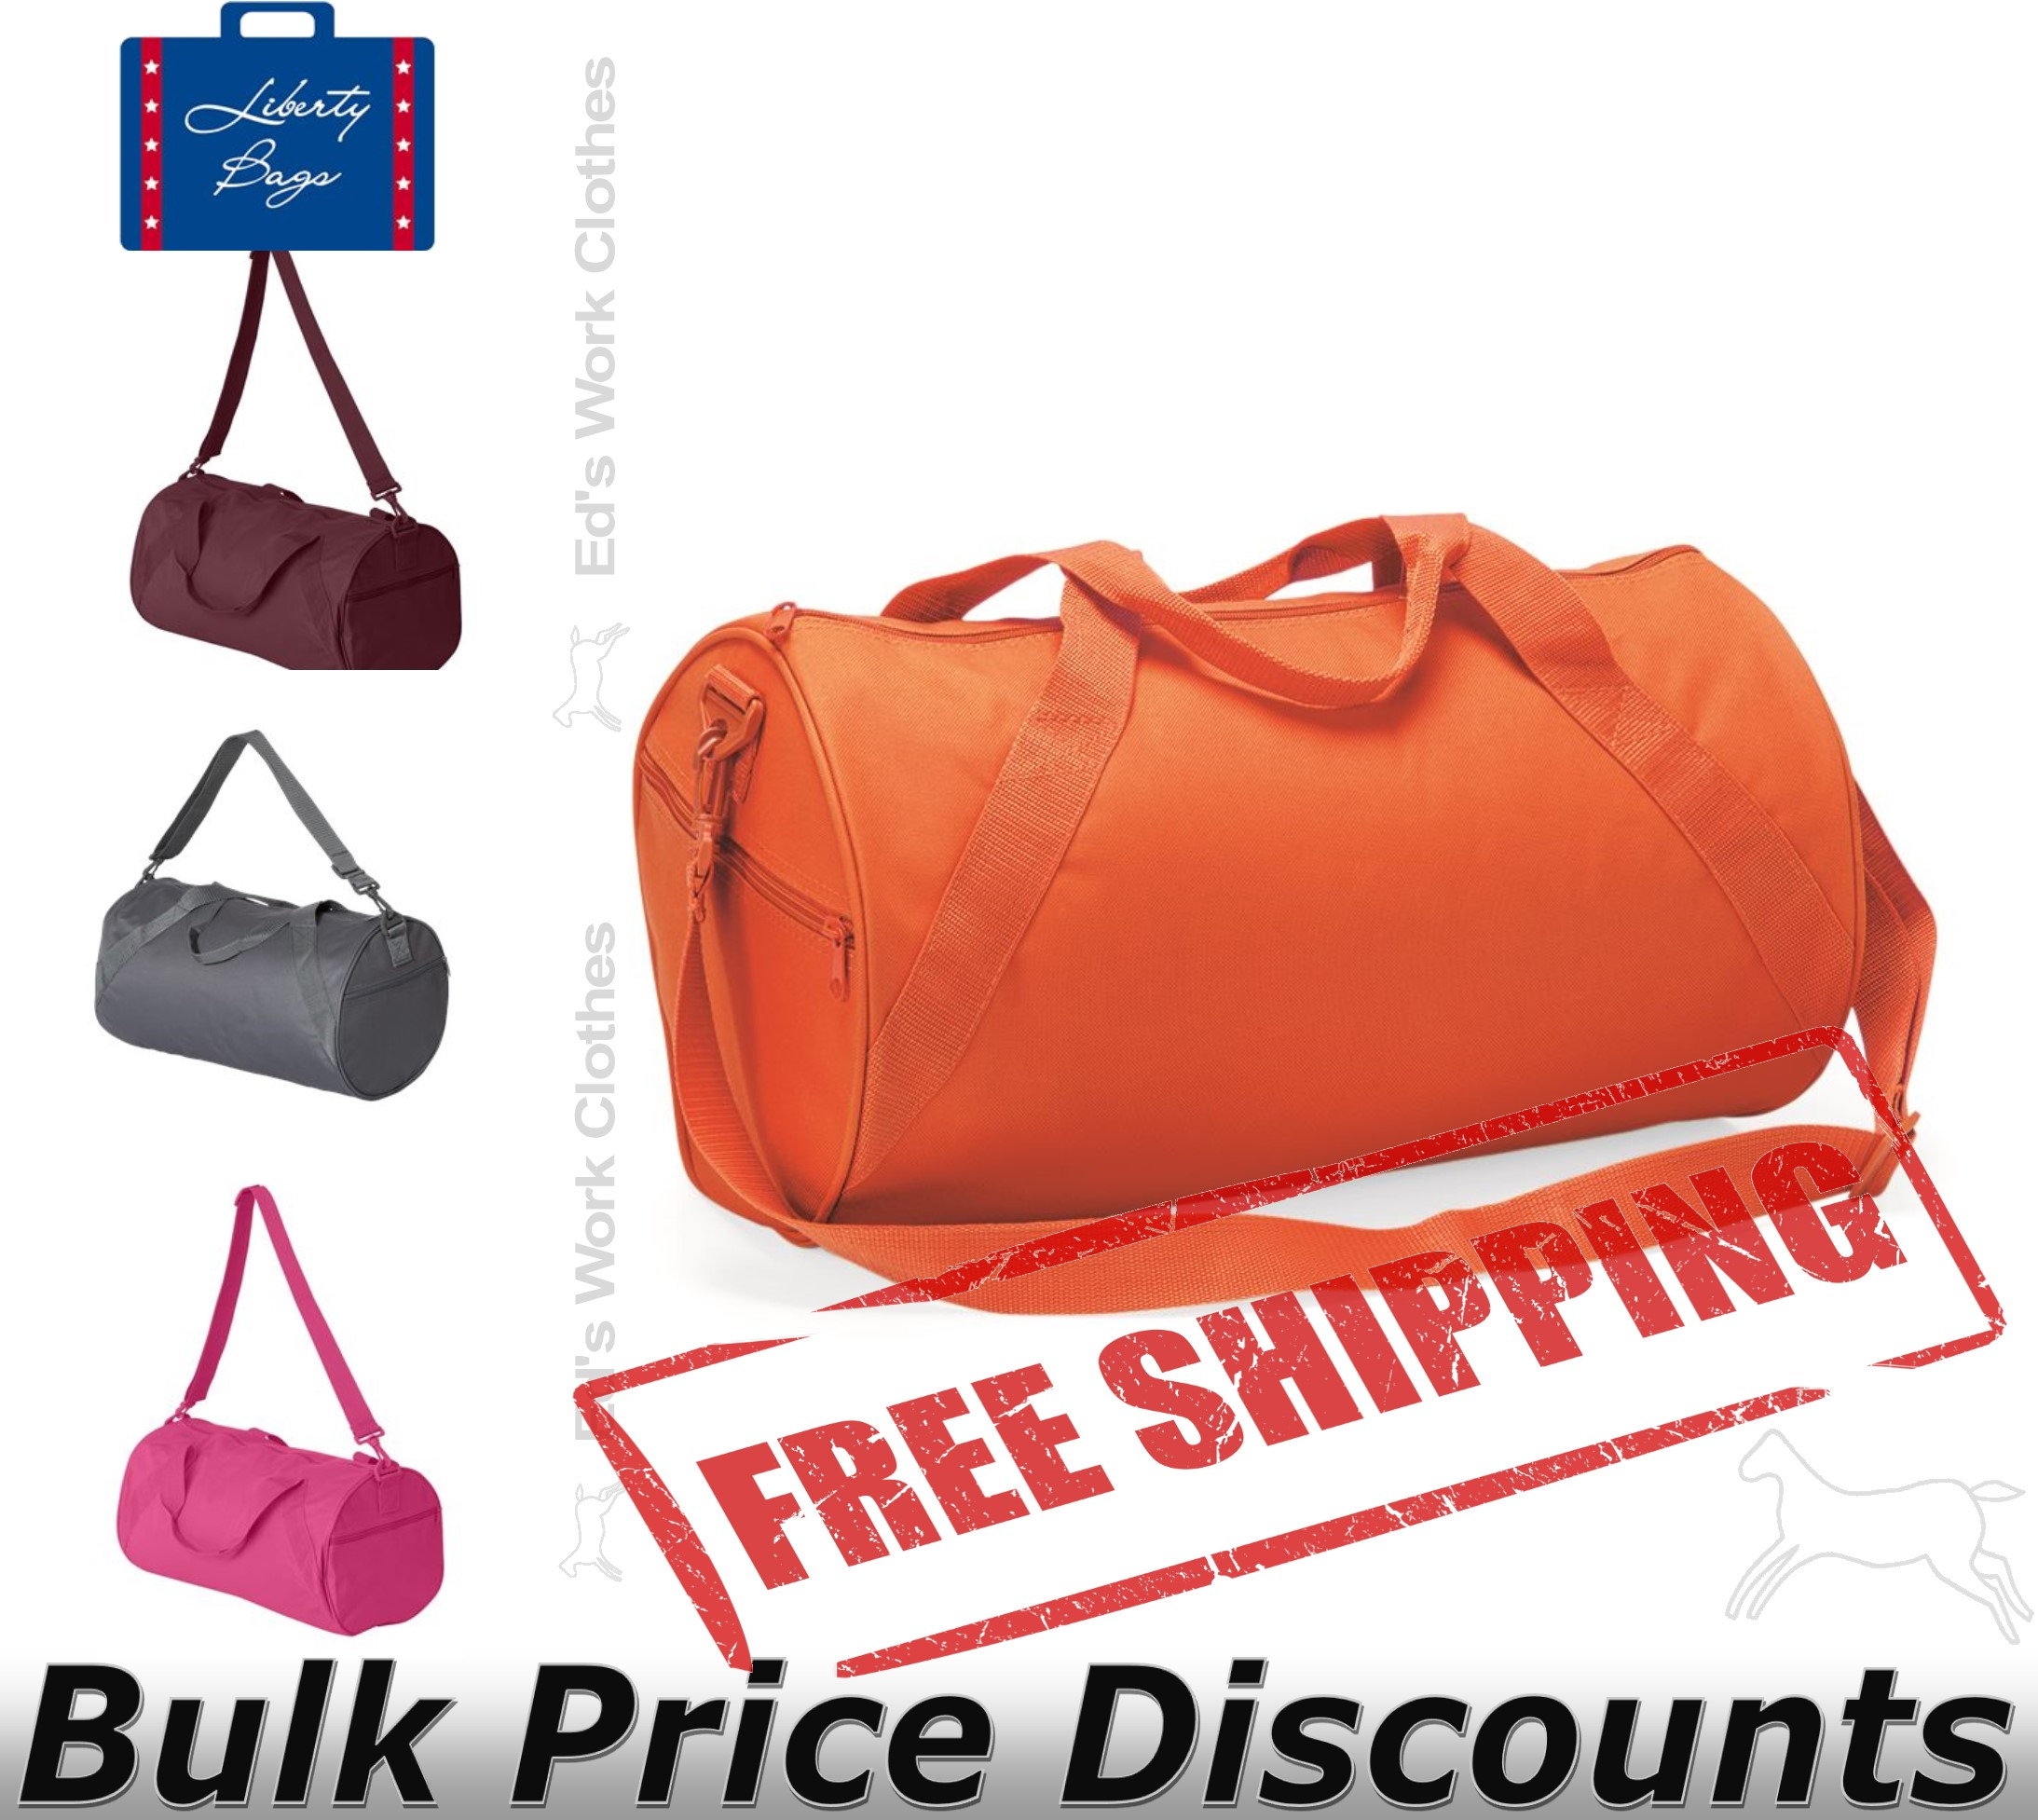 Liberty-Bags-Recycled-Small-Duffel-Gym-Bag-8805-Size-18-034-x-10-034-x-10-034